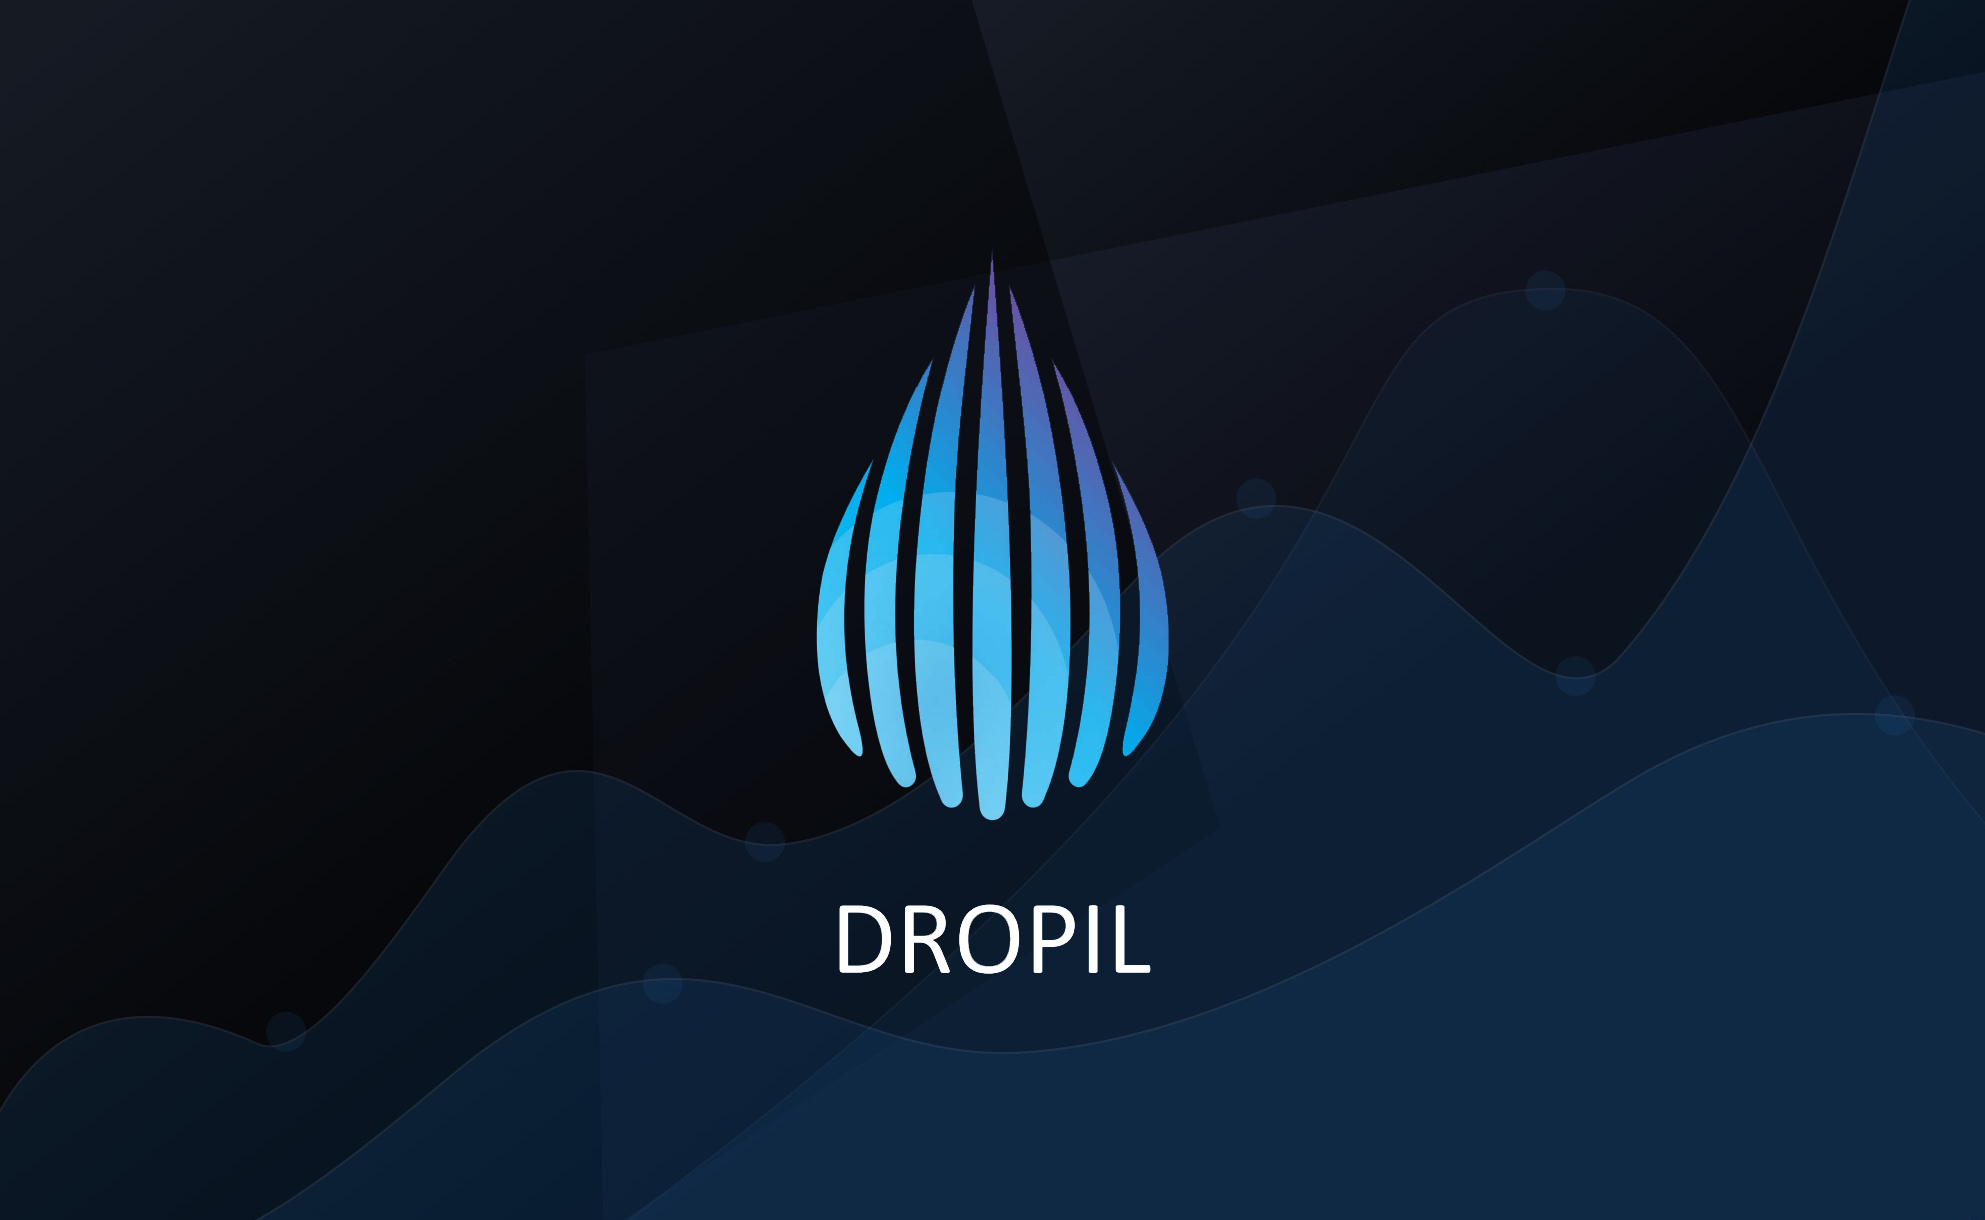 Dropil - pangentukan cryptocurrency DROP